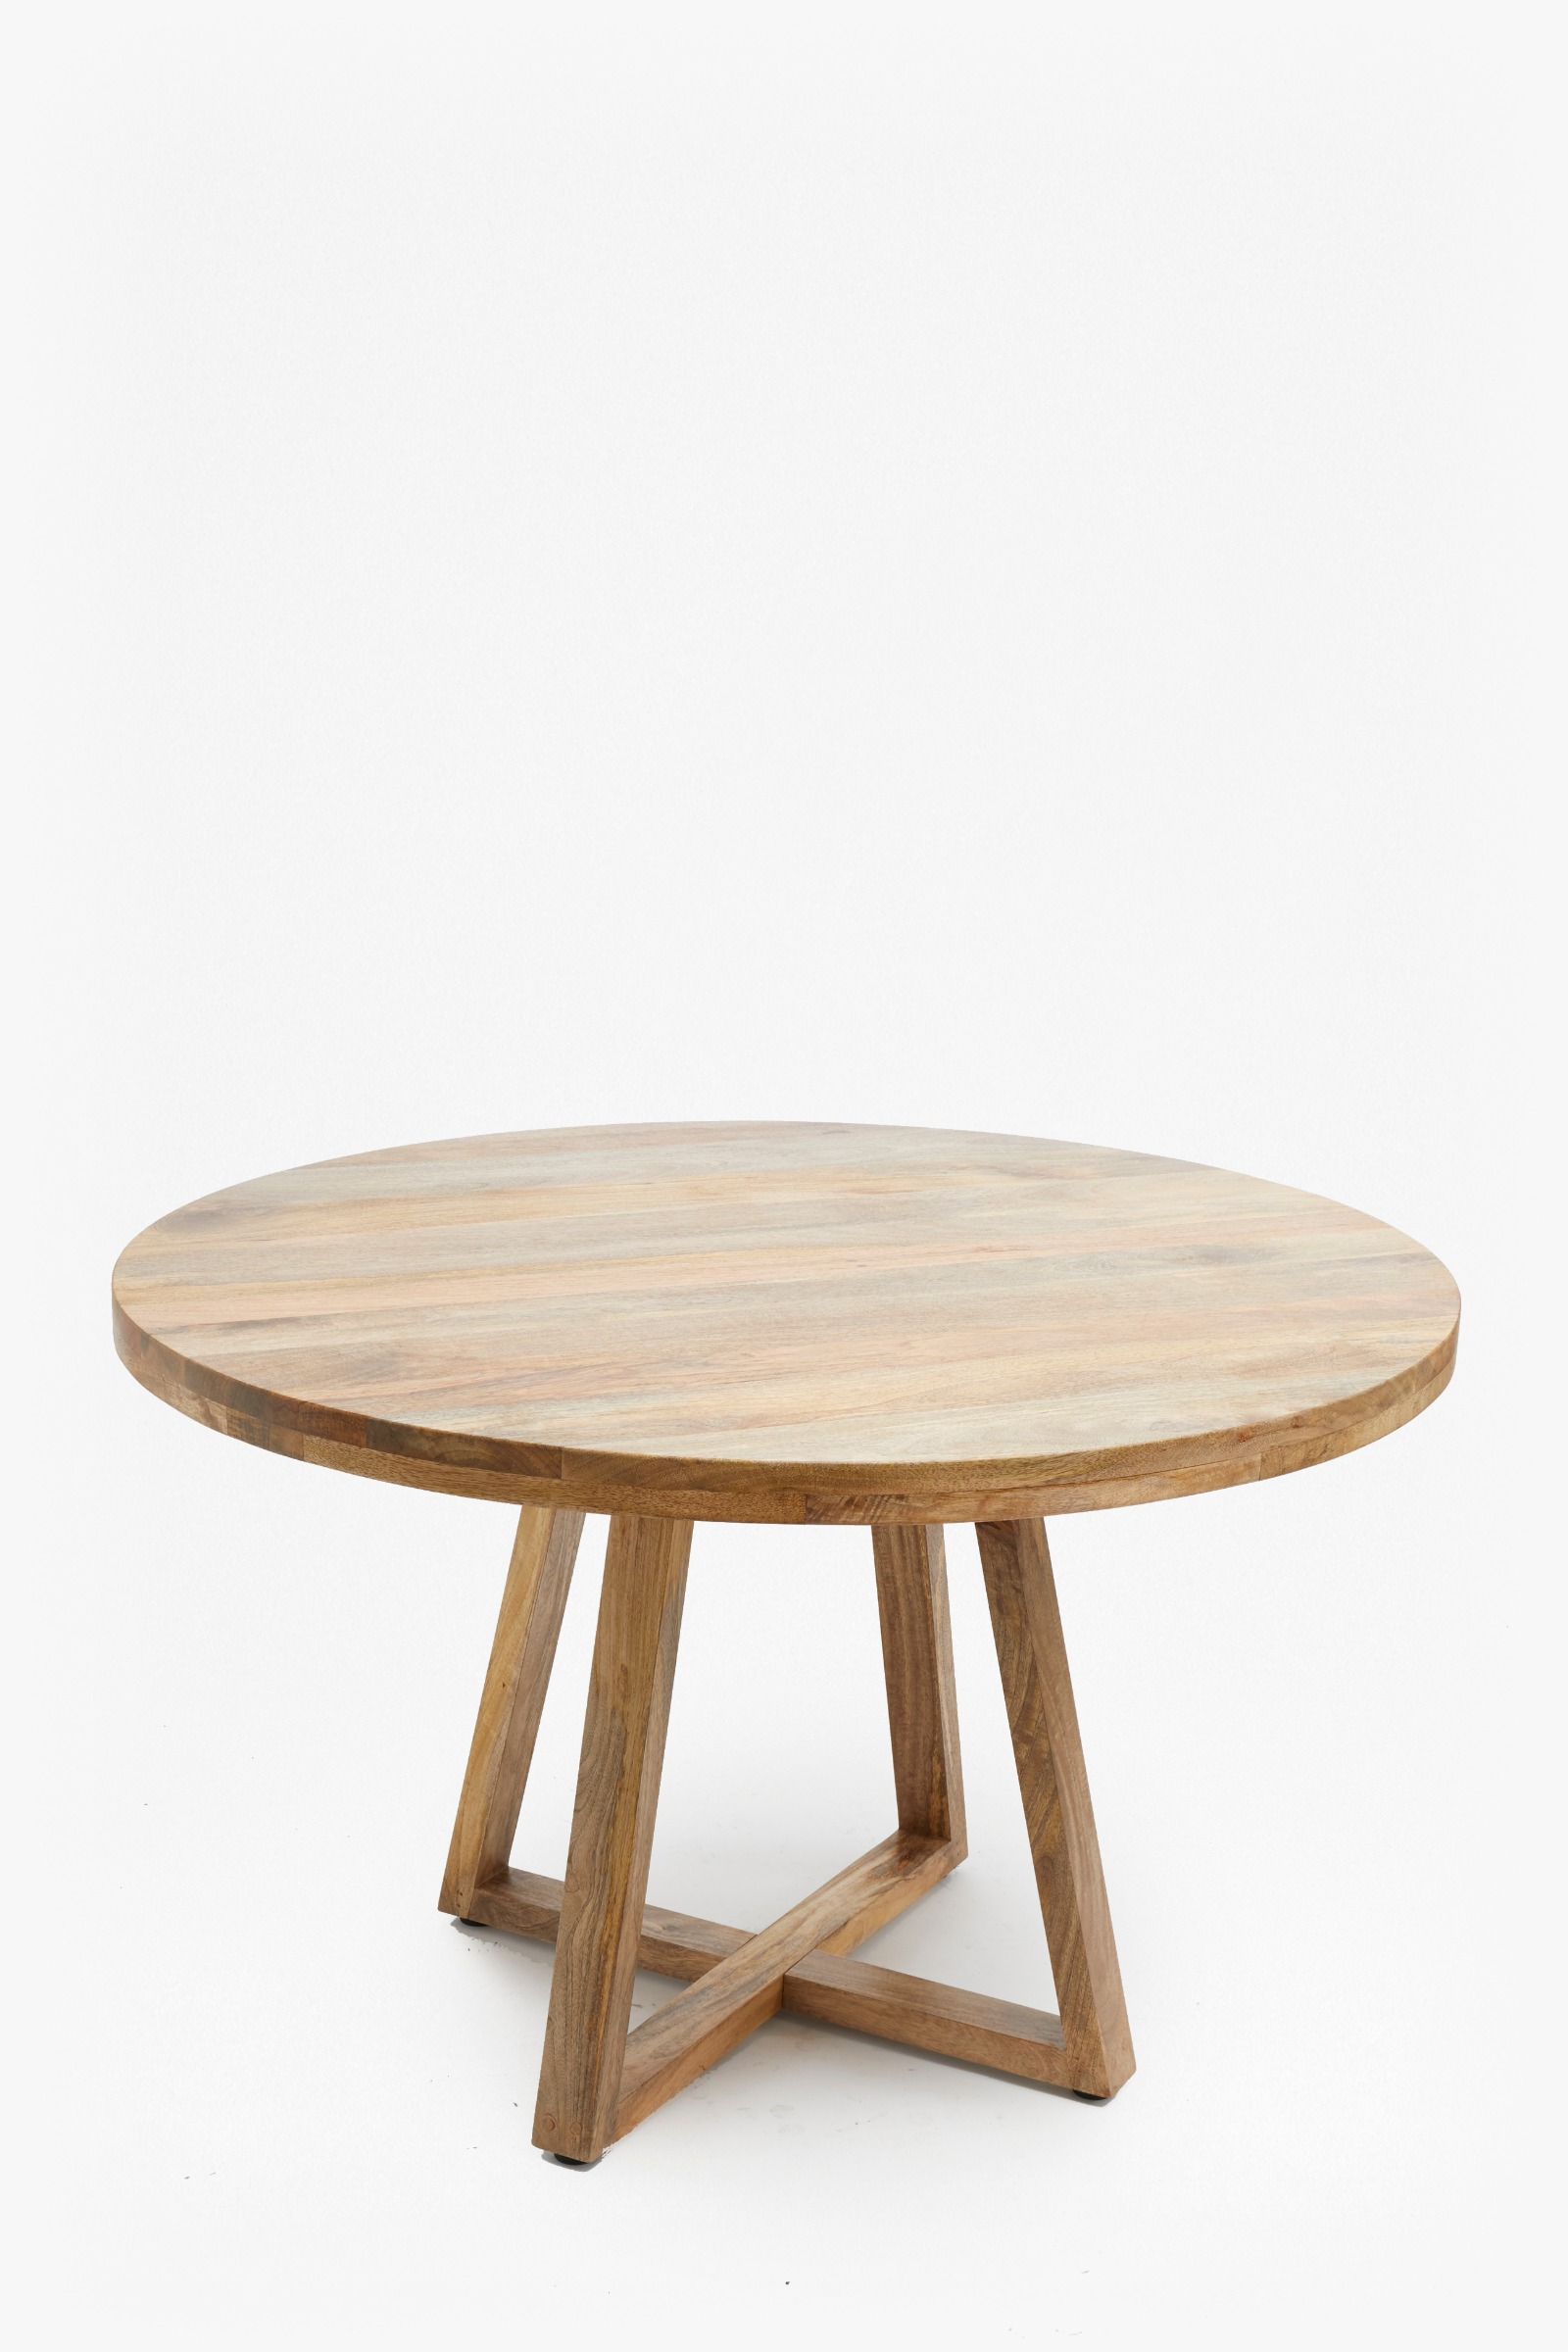 round wooden dining table collection french connection rh frenchconnection com round wooden table and chairs round wooden table legs